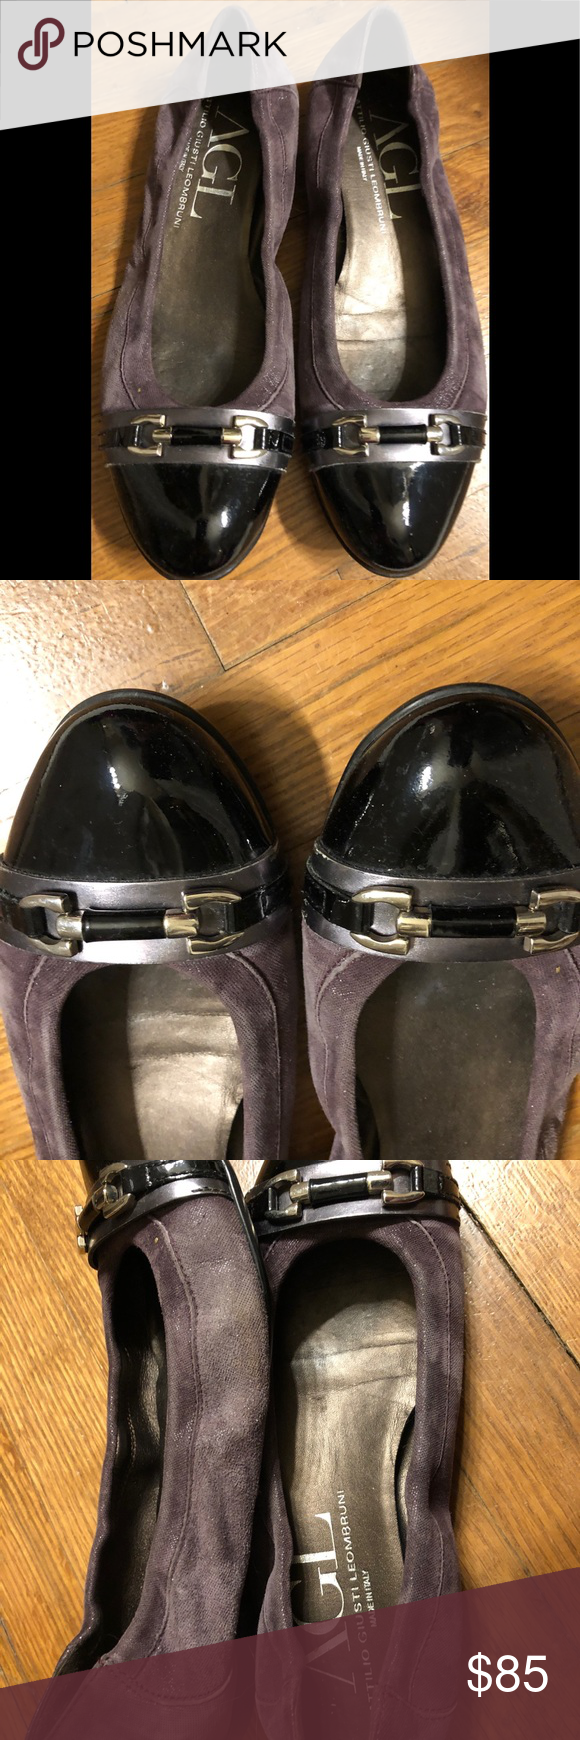 b86be1b5e Attilio Giusti Leombruni AGL Ballet Flats Shoes 10 Beautiful flats by AGL  leather with purple suede on the sides with a black patent leather tips.